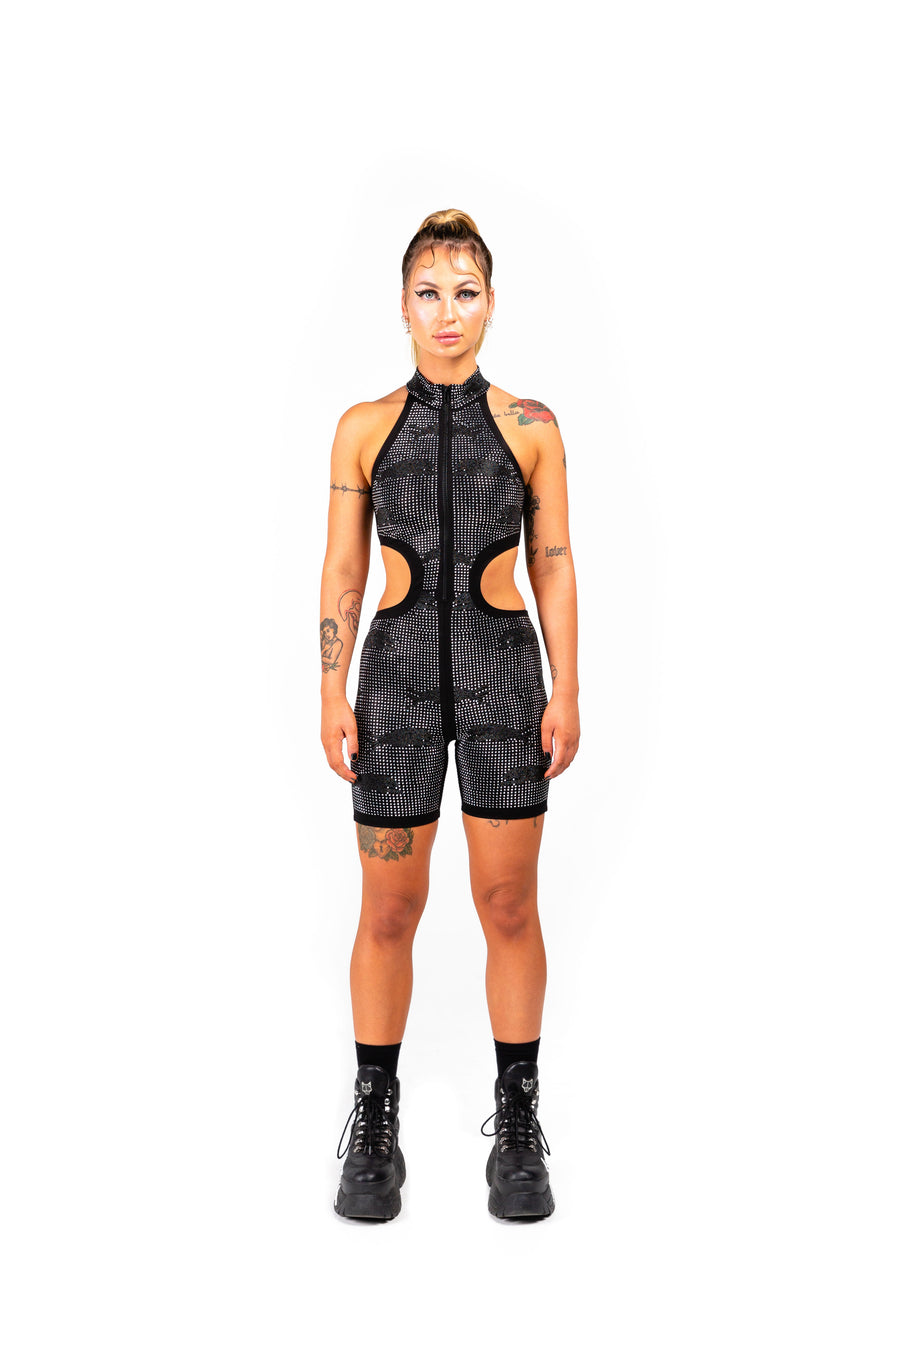 COMPOUND UNITARD - BLACK